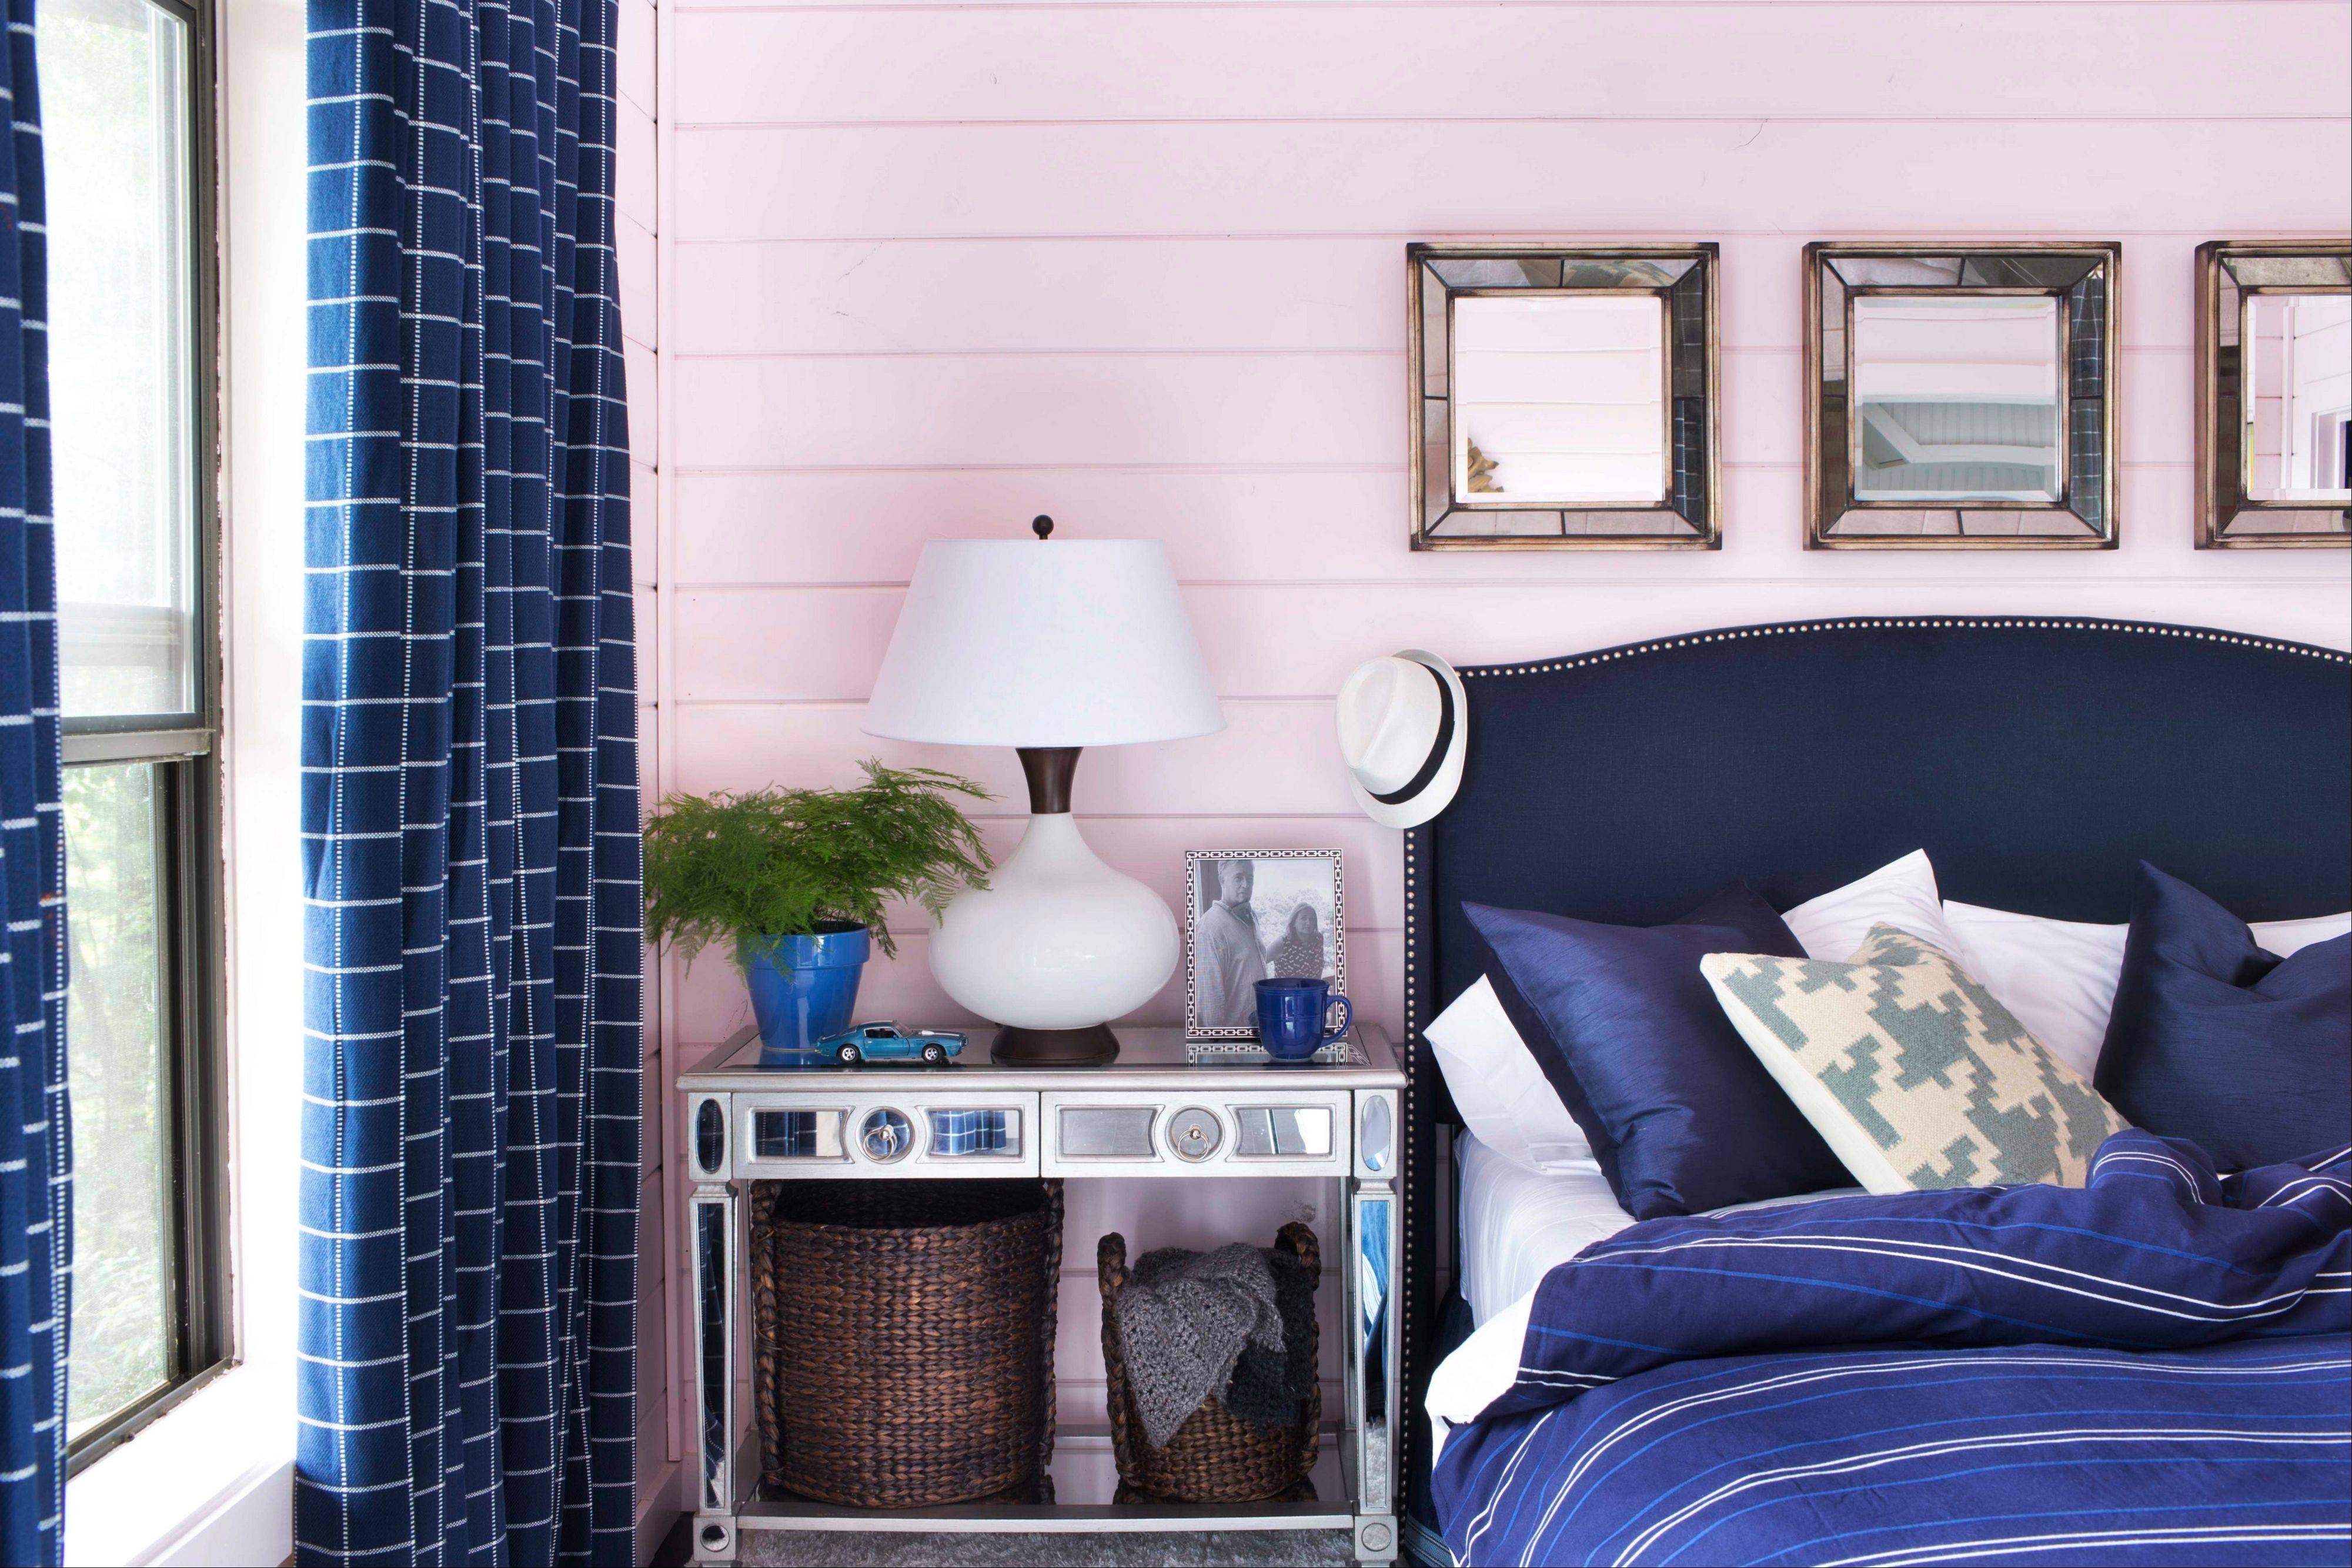 A guest bedroom by designer Brian Patrick Flynn uses a muted shade of blush on the walls and ceiling. Flynn suggests blush tones will become popular in 2014, but to add a fresh touch, they'll be paired with masculine tones such as navy blue.